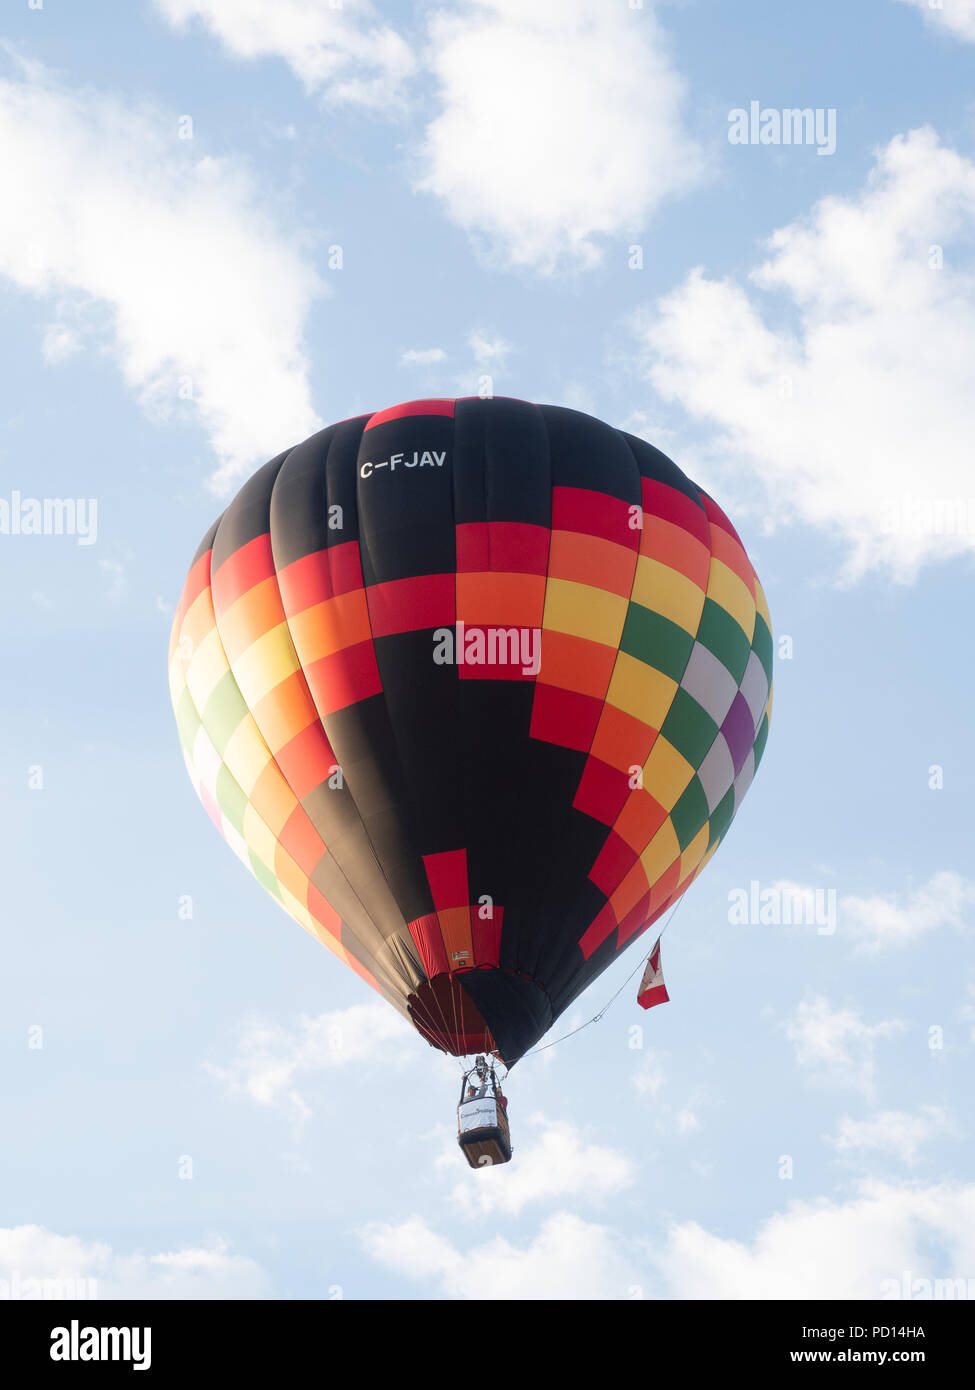 A Black, Red, Orange and Yellow Balloon with geometric pattern in Flight at the Big Sky Balloon Fest with the pilot and one passenger visible. - Stock Image